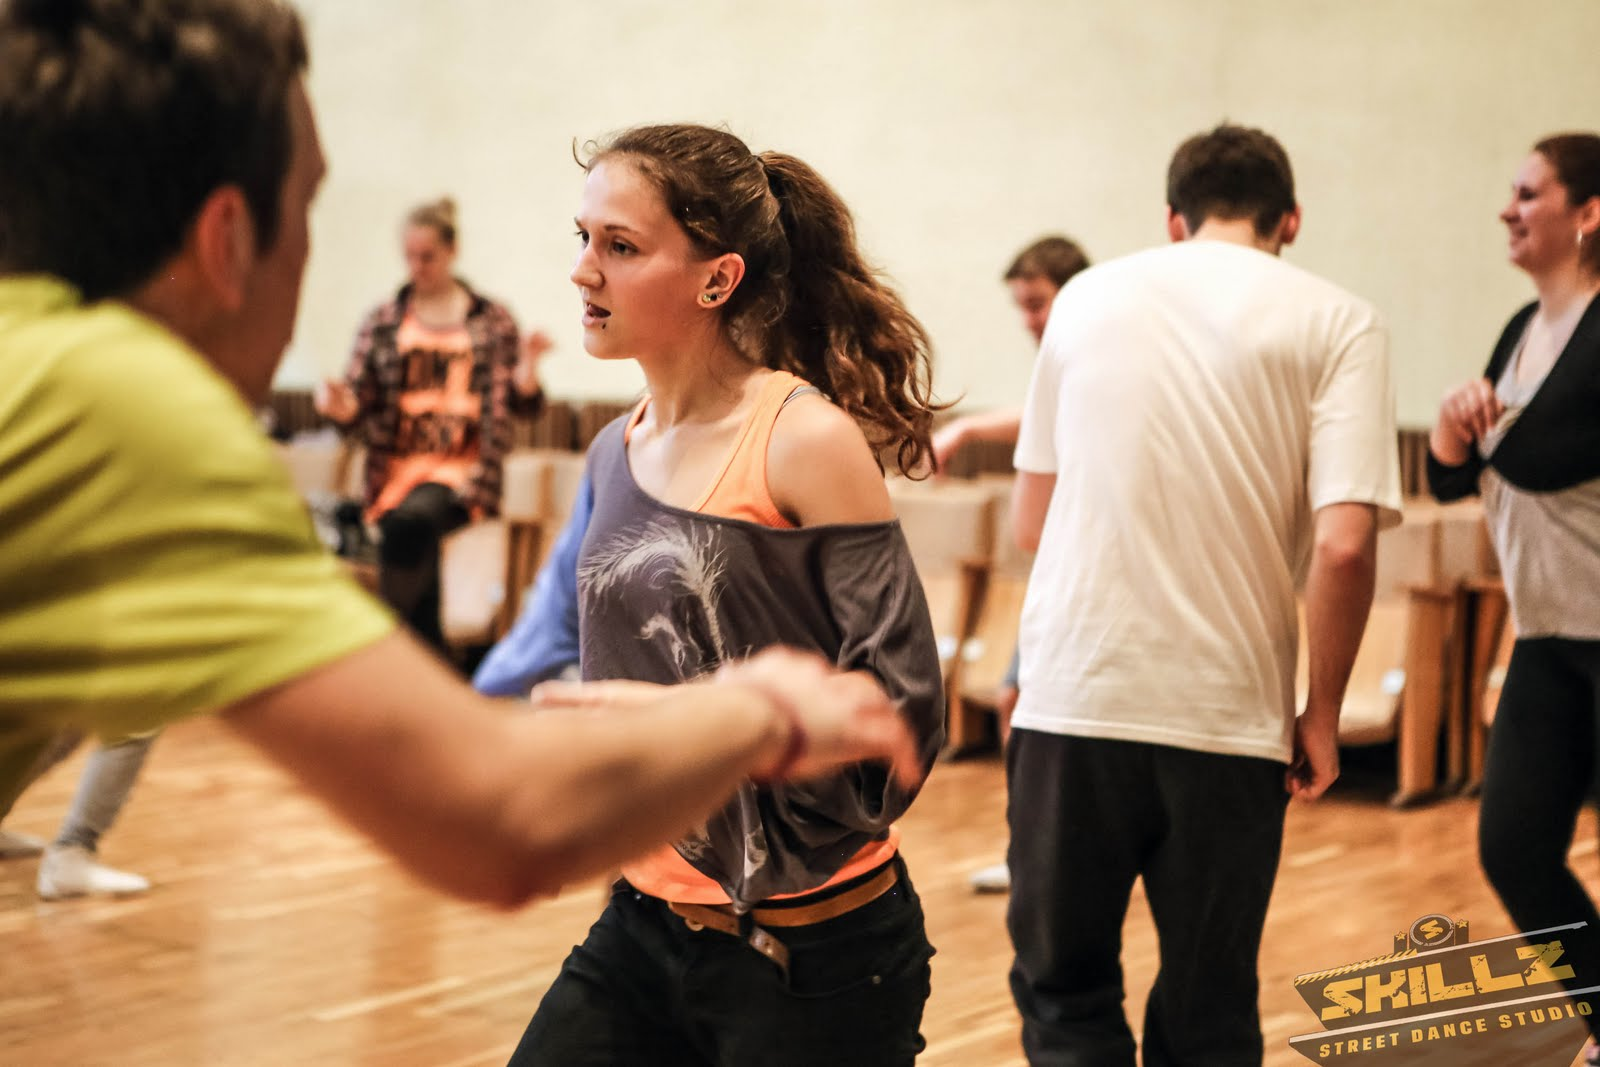 Workshop with Kusch (Russia) - IMG_4846.jpg